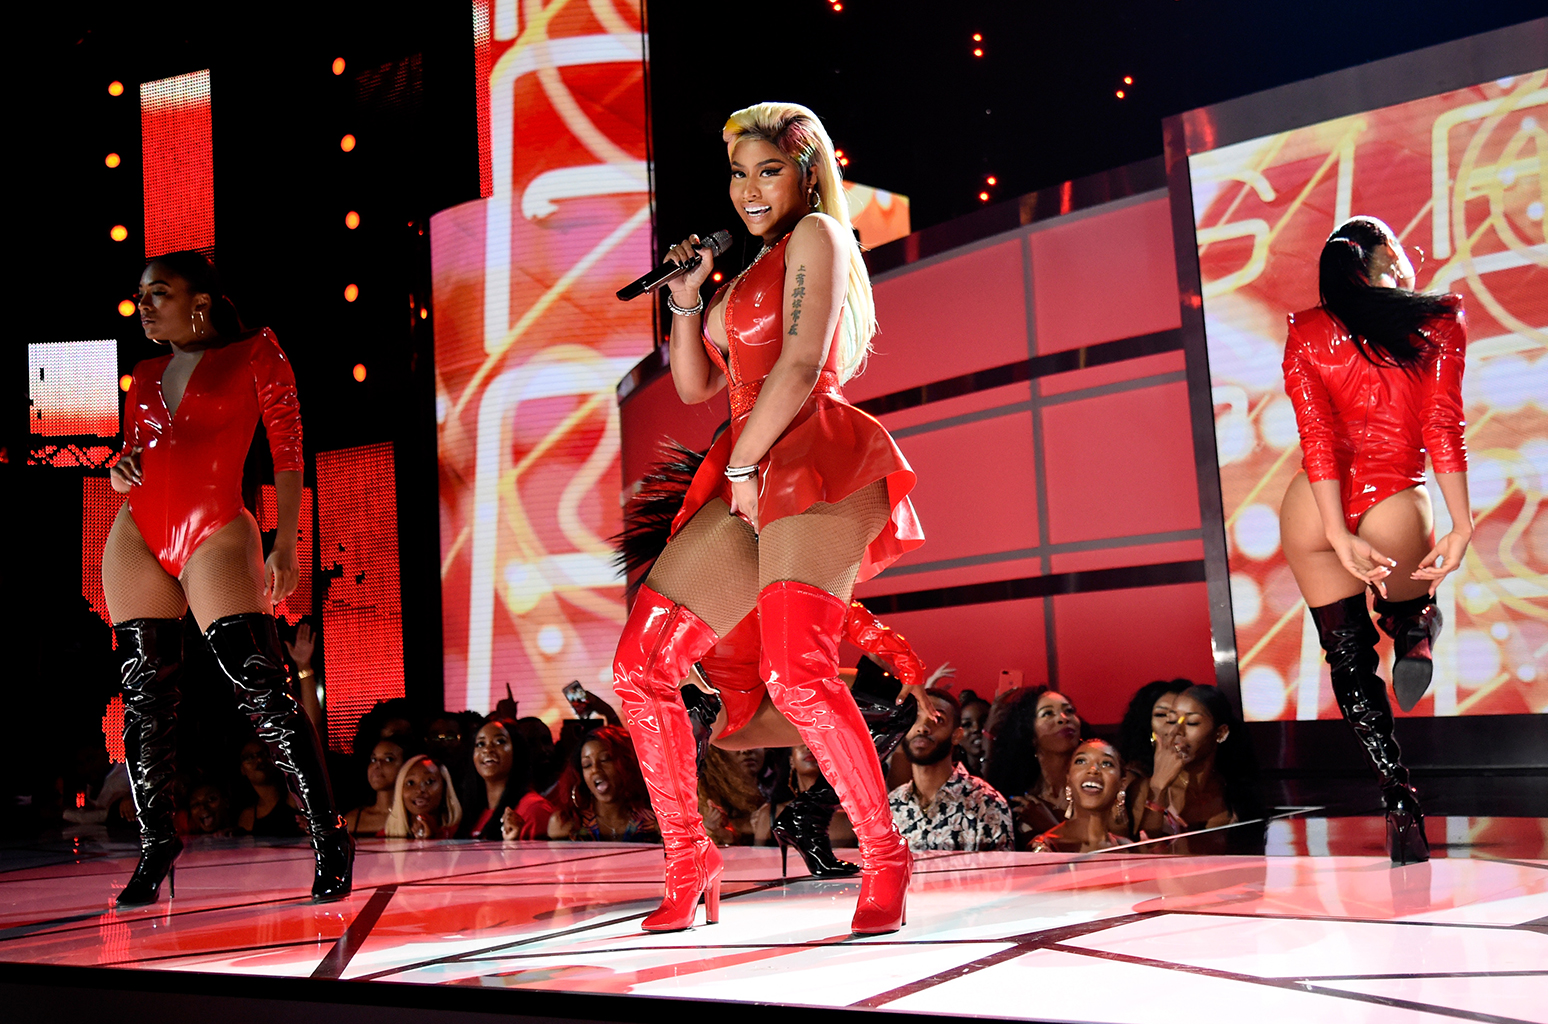 Nicki Minaj's BET Awards Performance Was One to Remember